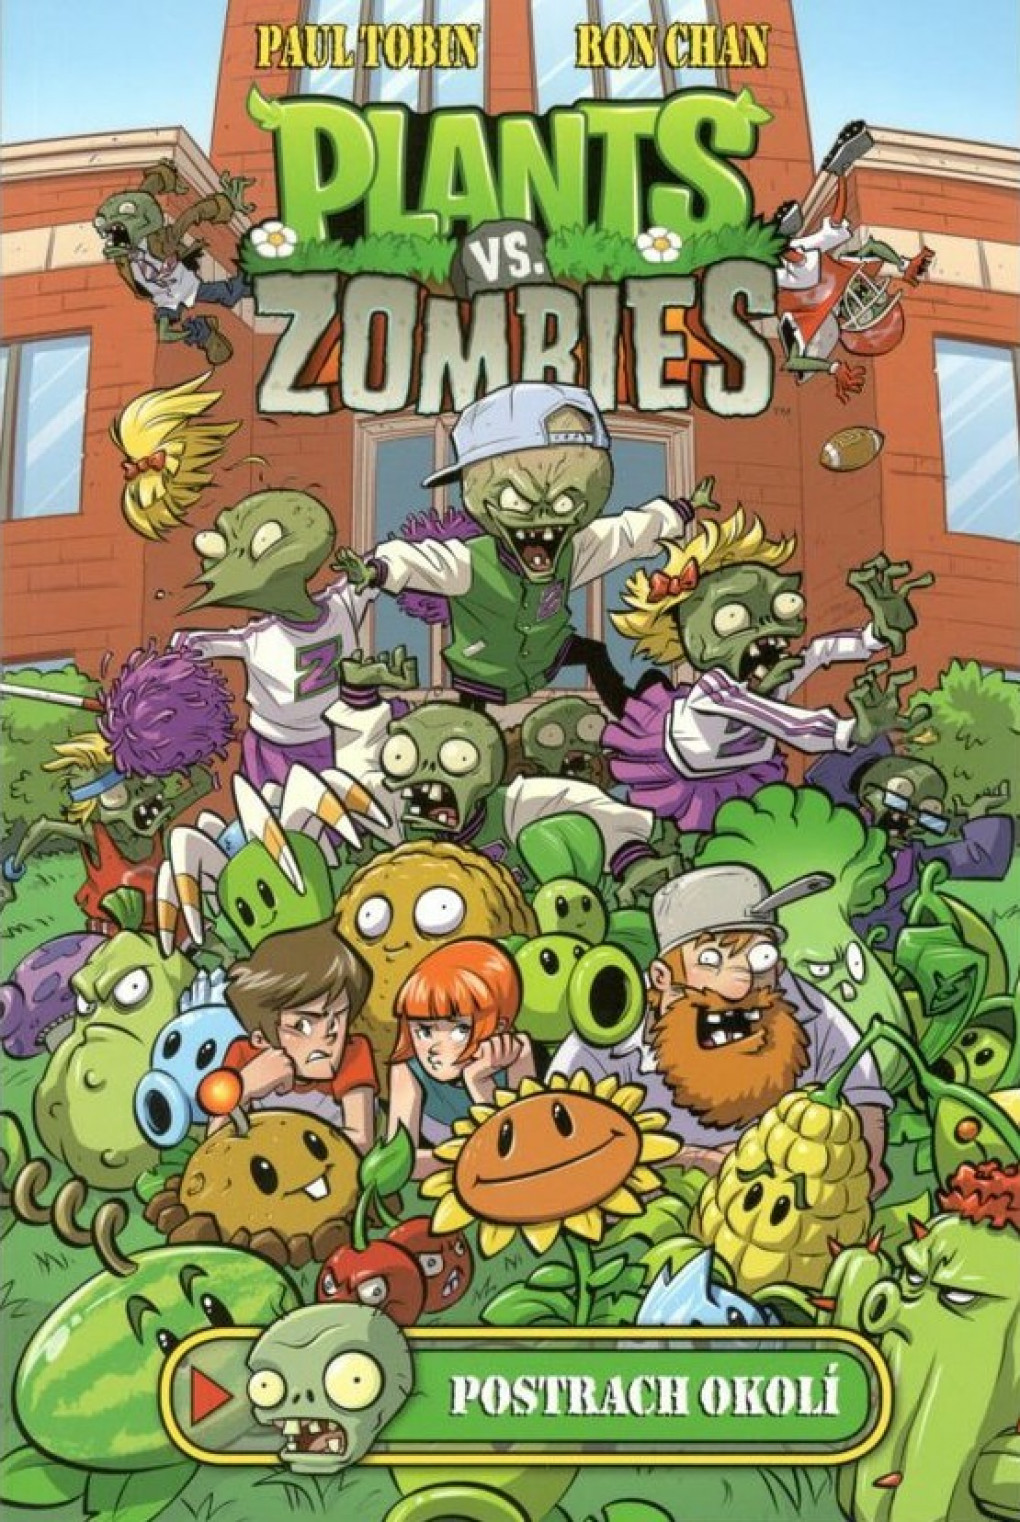 plants_vs_zombies_postrach_okoli.jpg